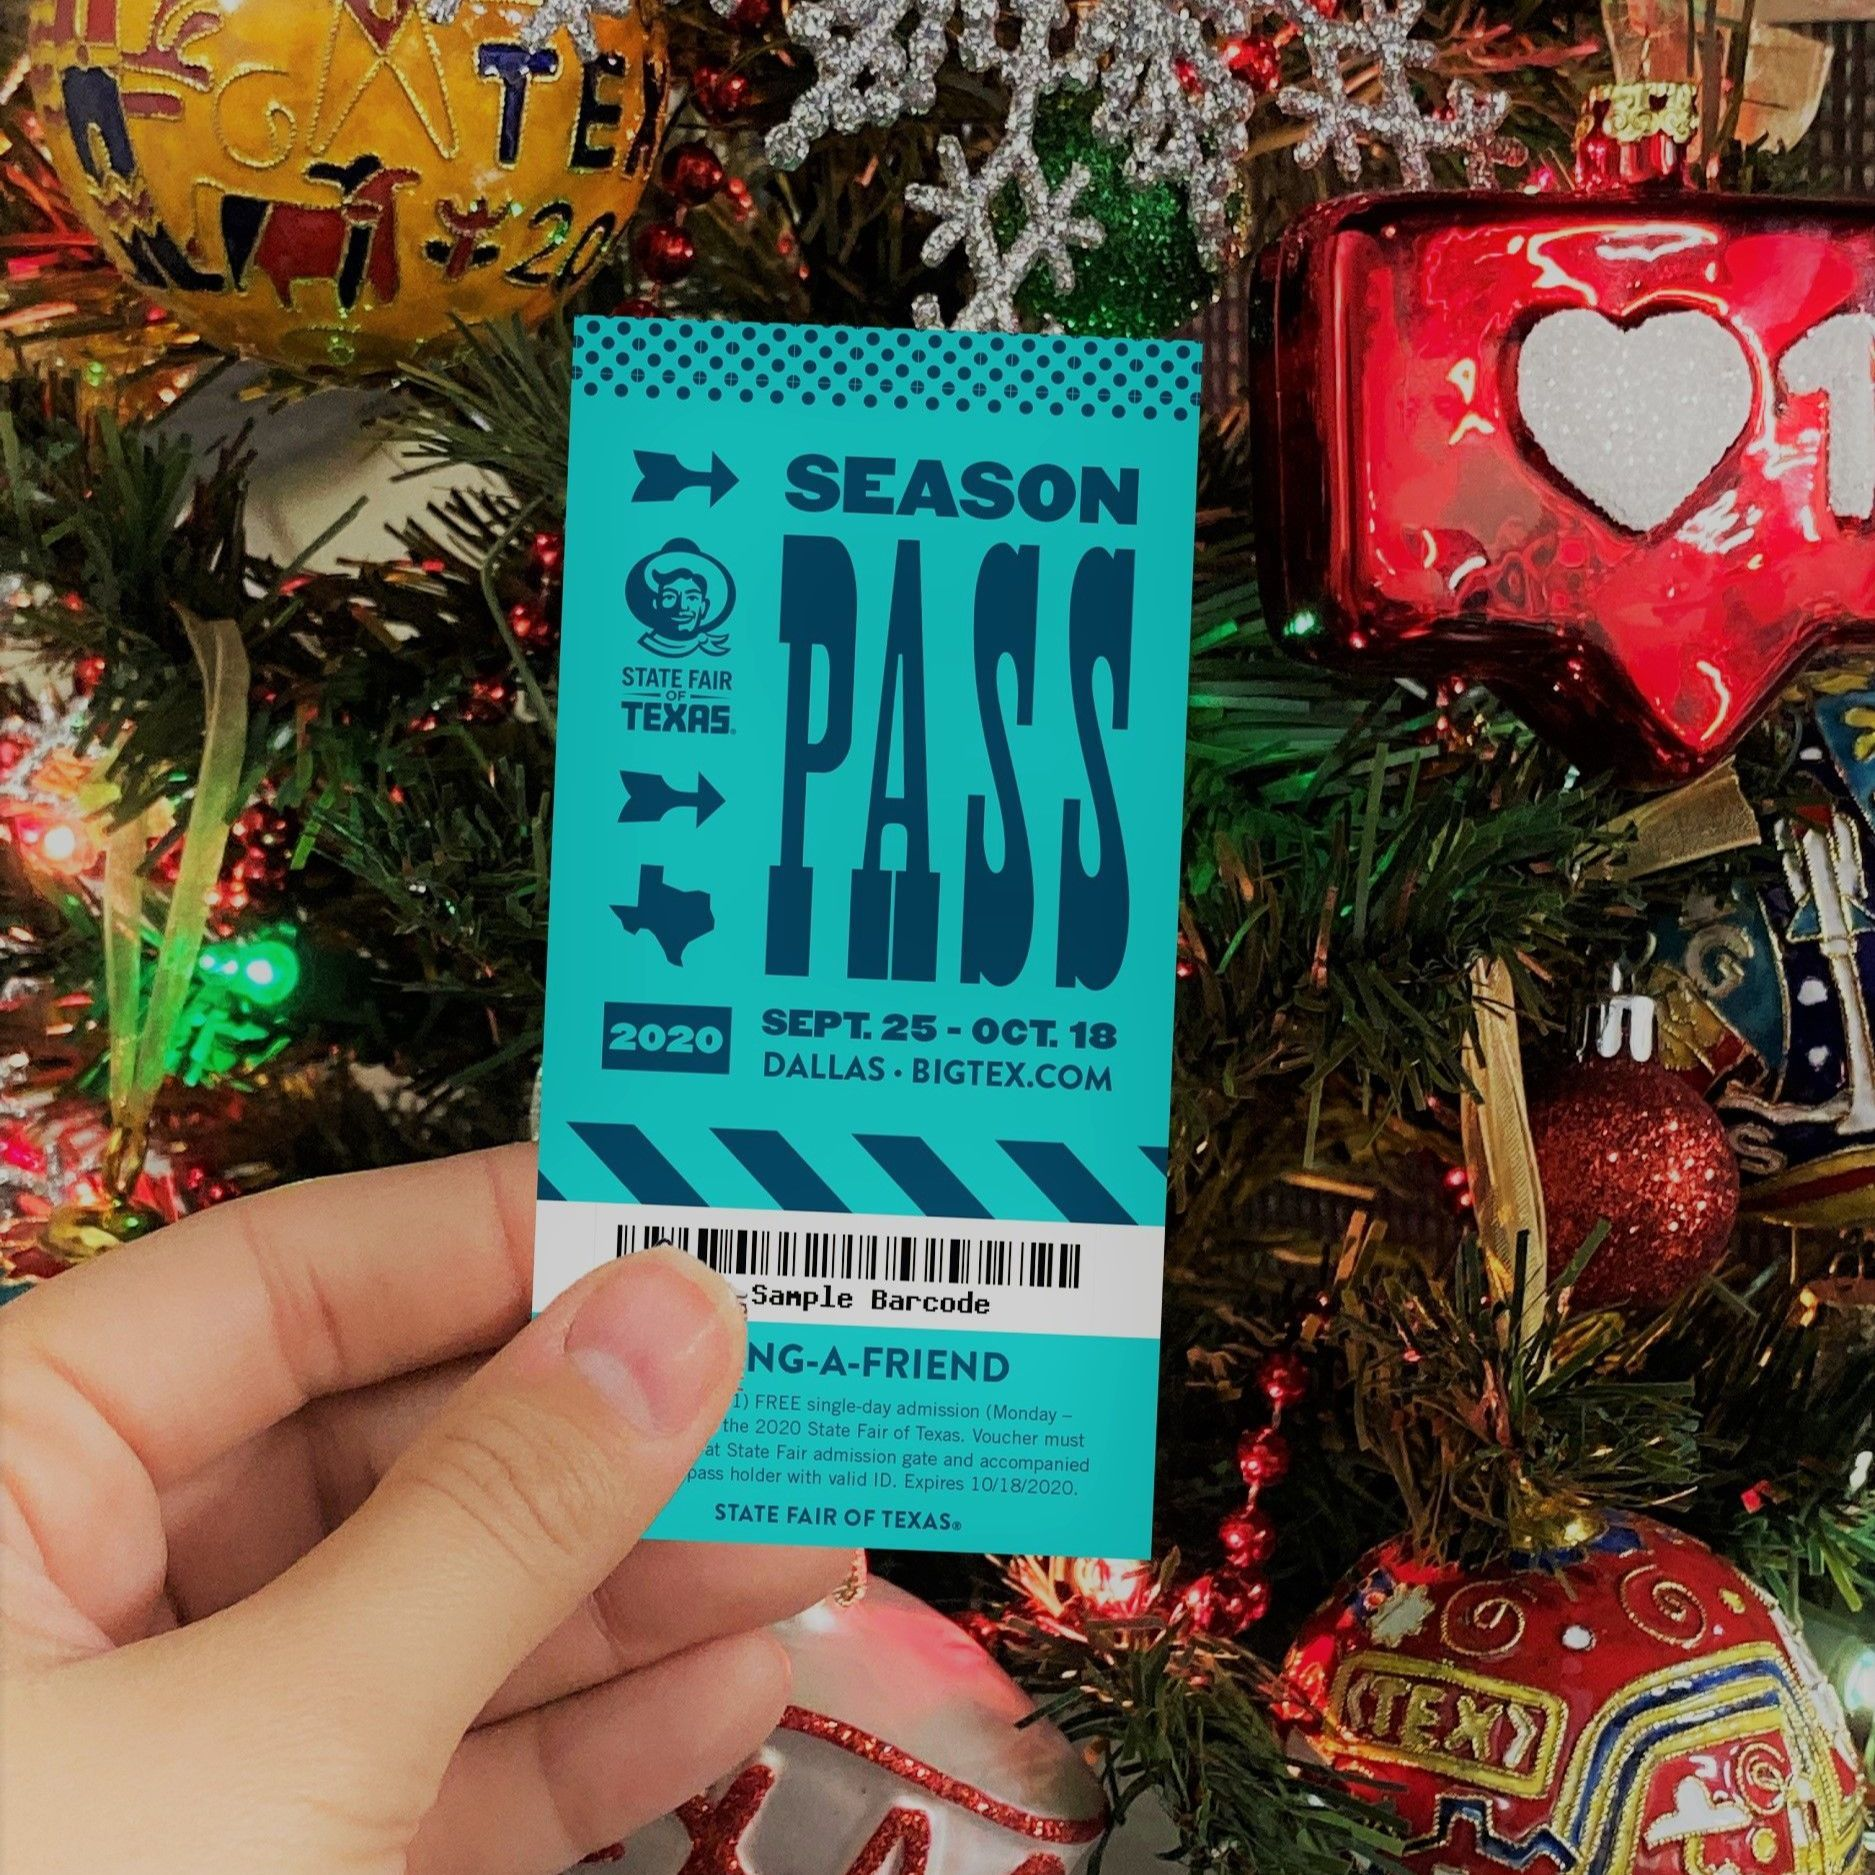 Give The Gift Of Texas This Holiday Season With A State Fair Of Texas 2020 Season Pass Take 10 Off When You Use Promo Cod Texas State Fair State Fair Seasons